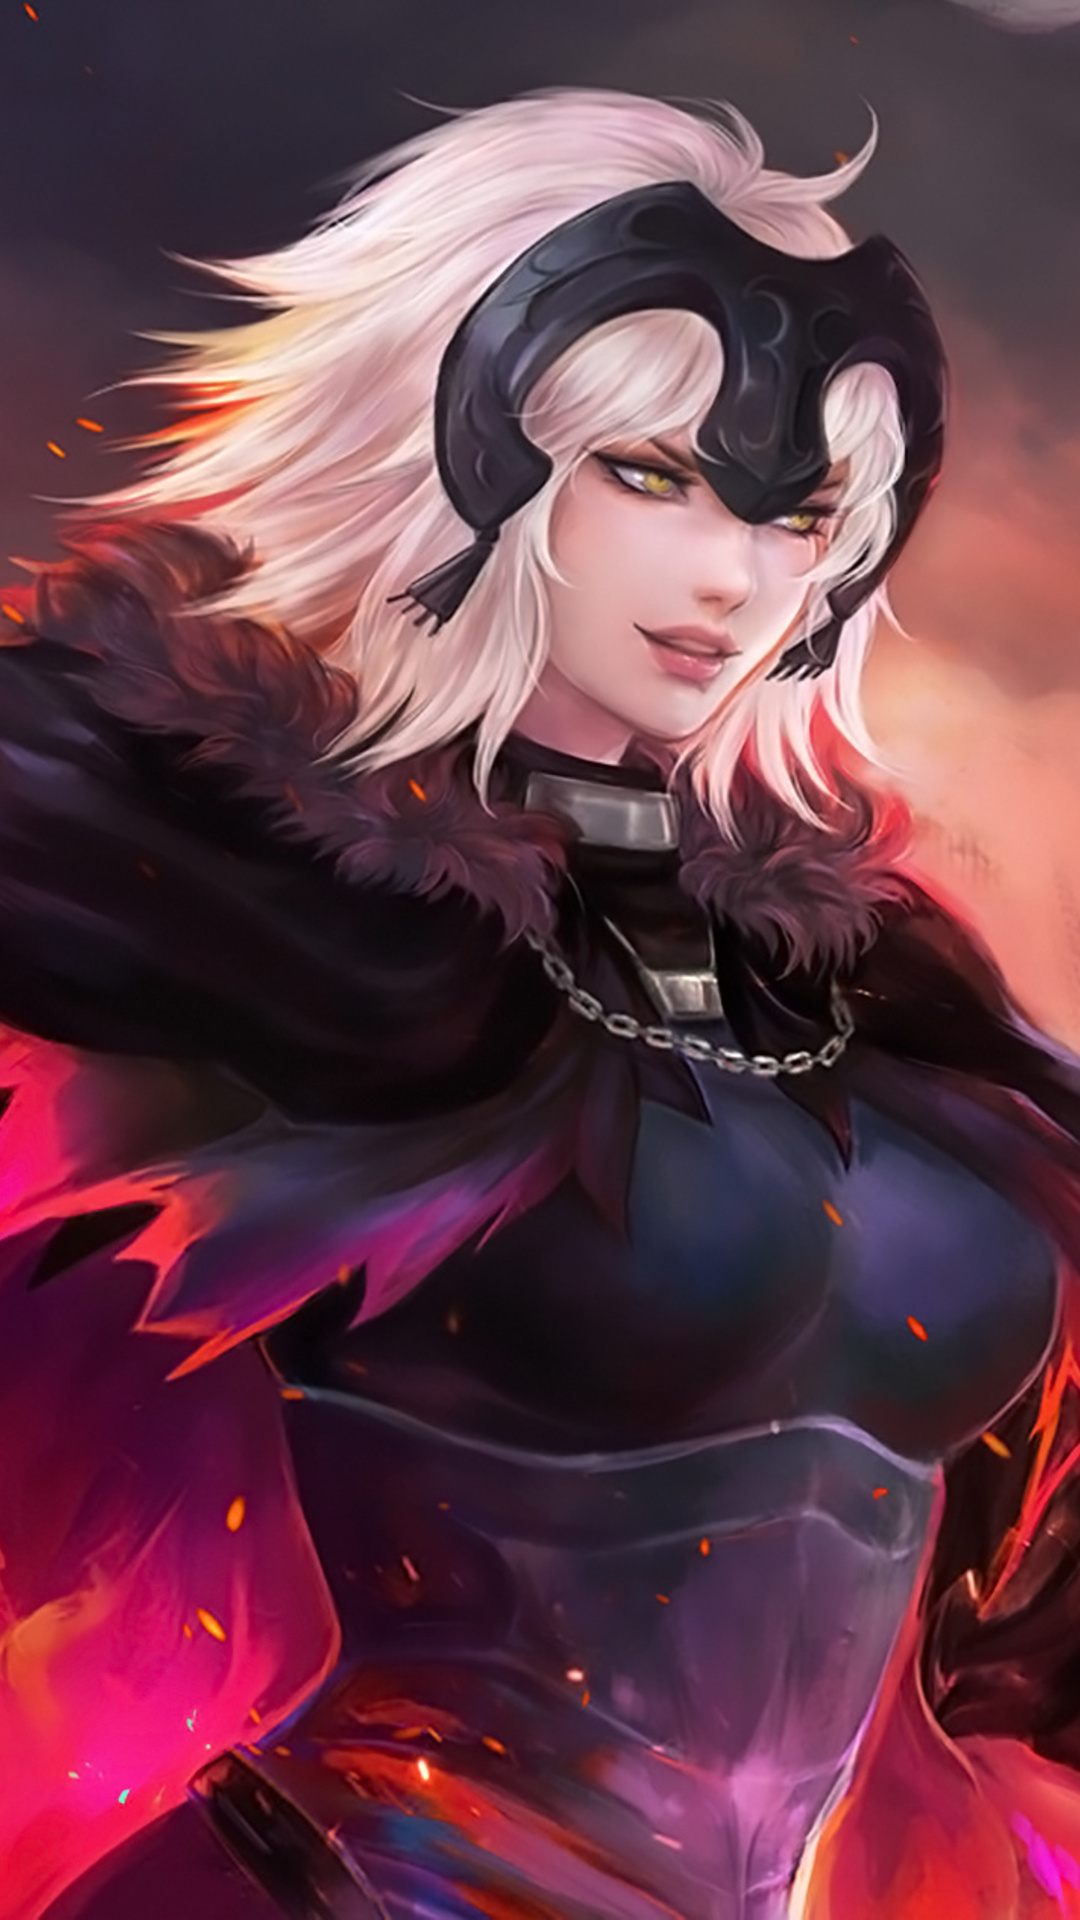 1080x1920 jeanne alter anime fate grand order iphone 7 6s - Anime wallpaper hd iphone 7 ...